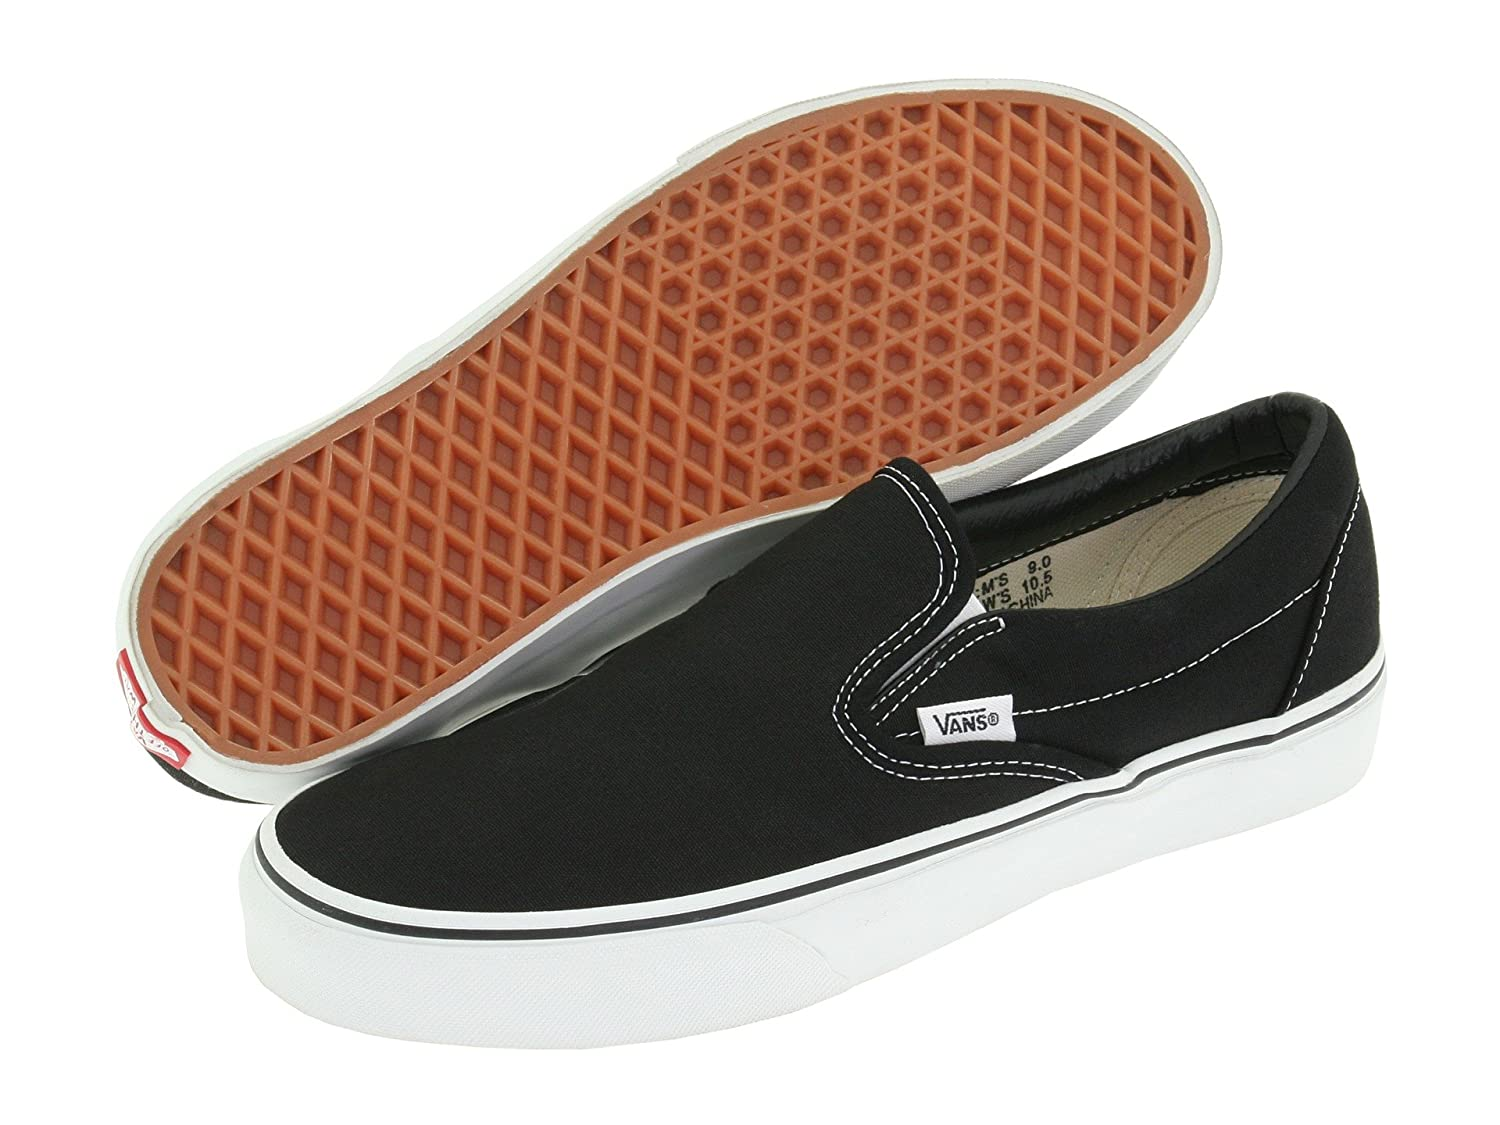 Vans Classic Slip-On Unisex B01LYWVNO0 10 B(M) US Women / 8.5 D(M) US Men|Black/White